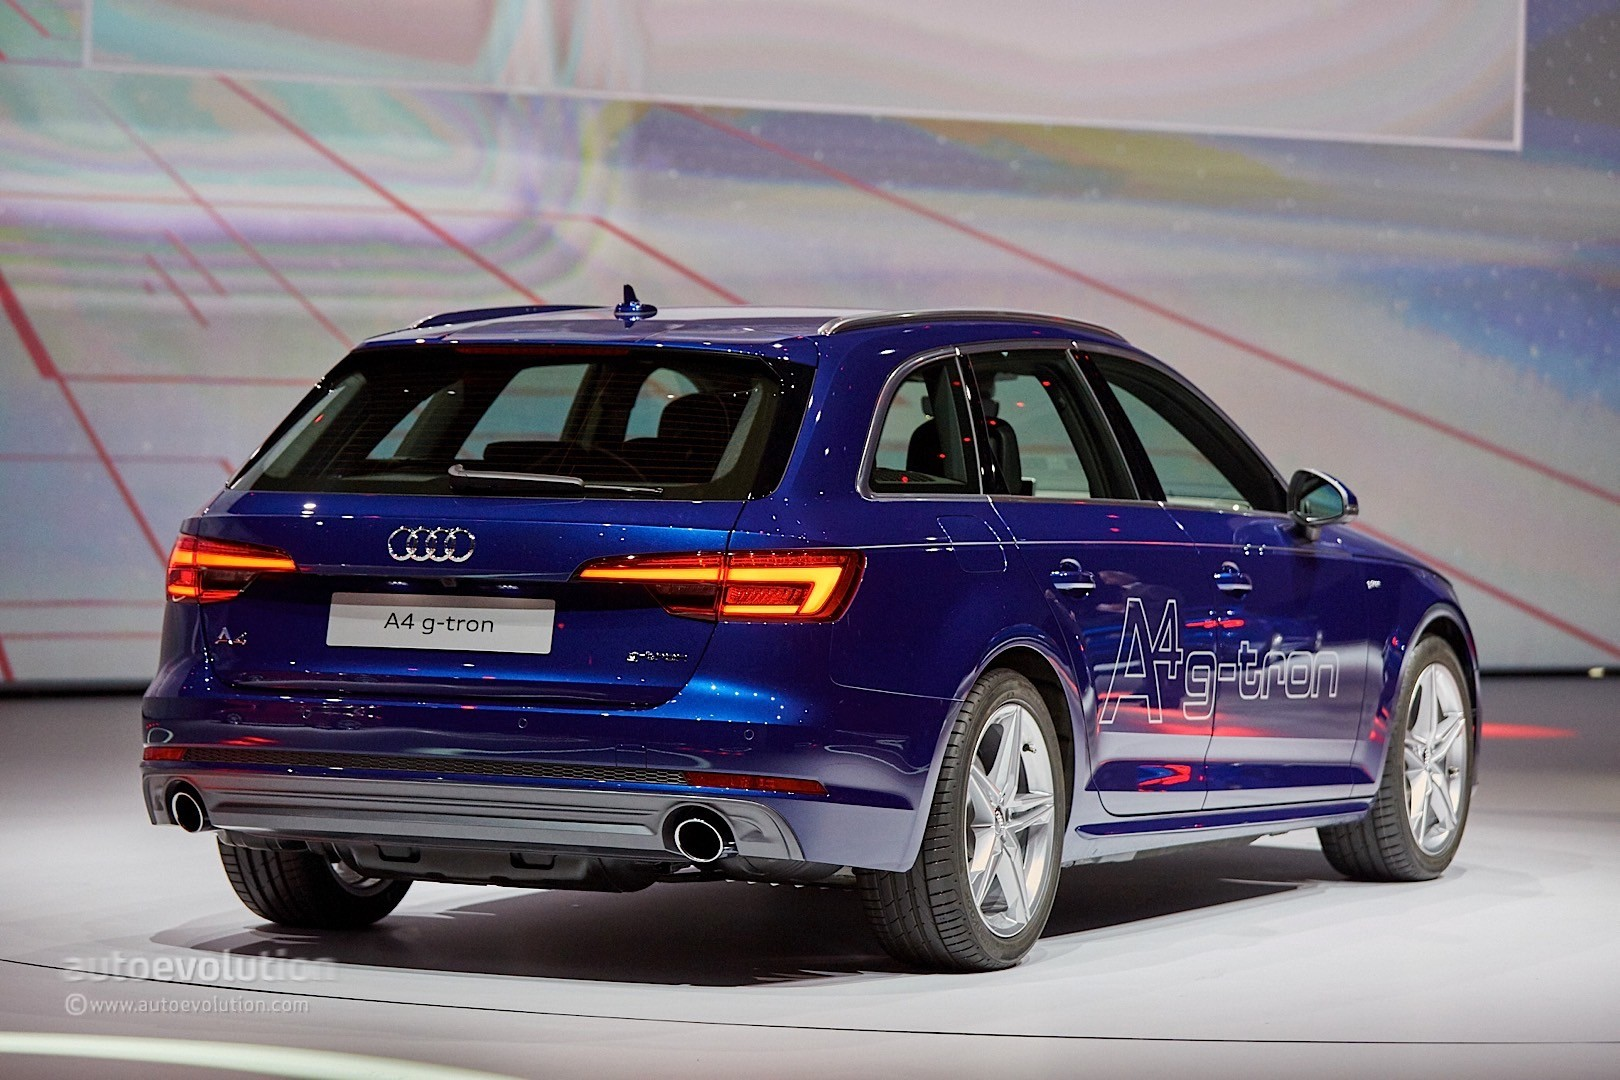 Compressed Air Car >> Audi A4 g-tron and A4 Ultra Are All About Economy in ...